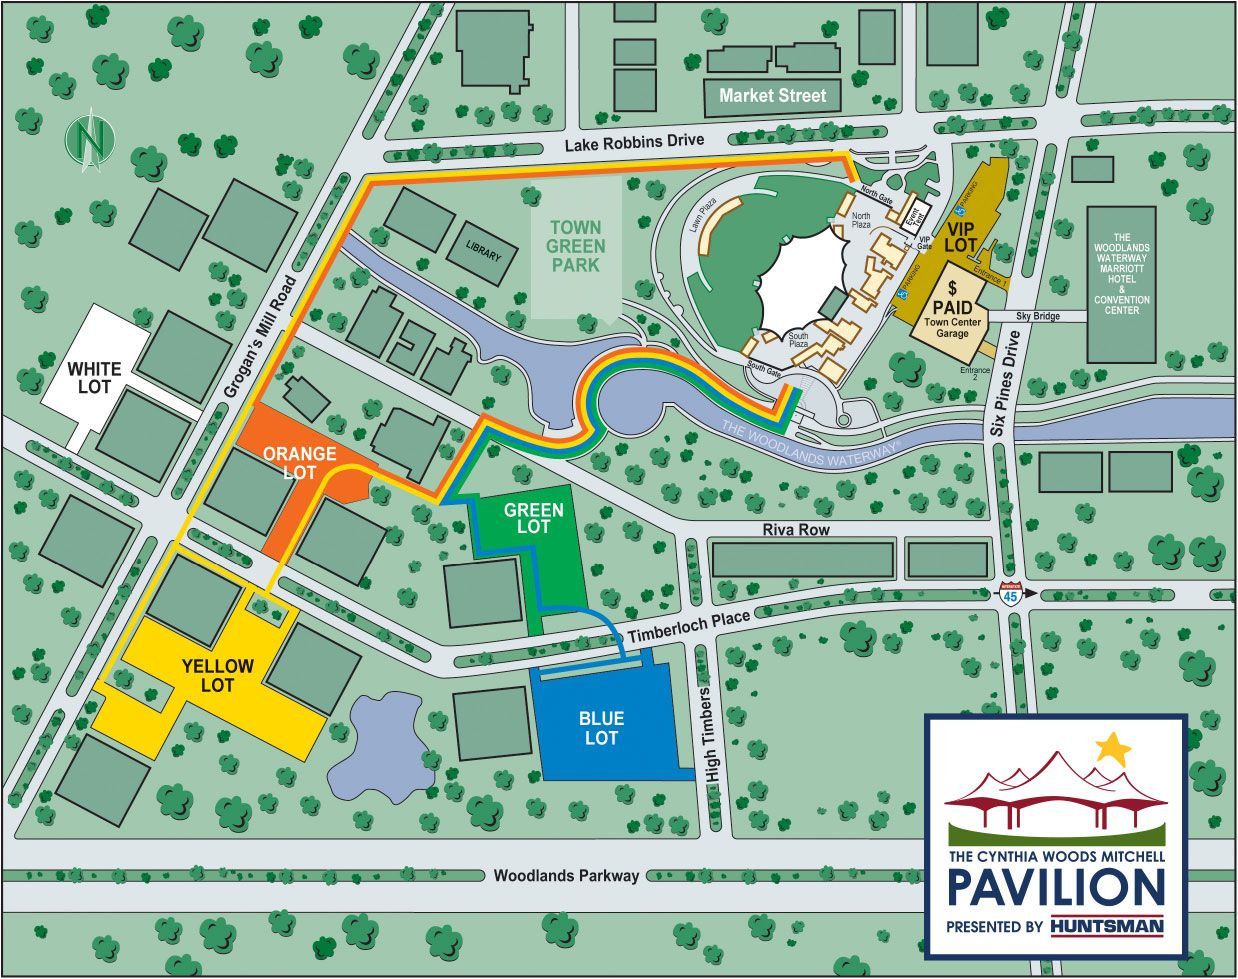 Pavilion Public Parking And Pathways Map Cynthia Woods Mitchell